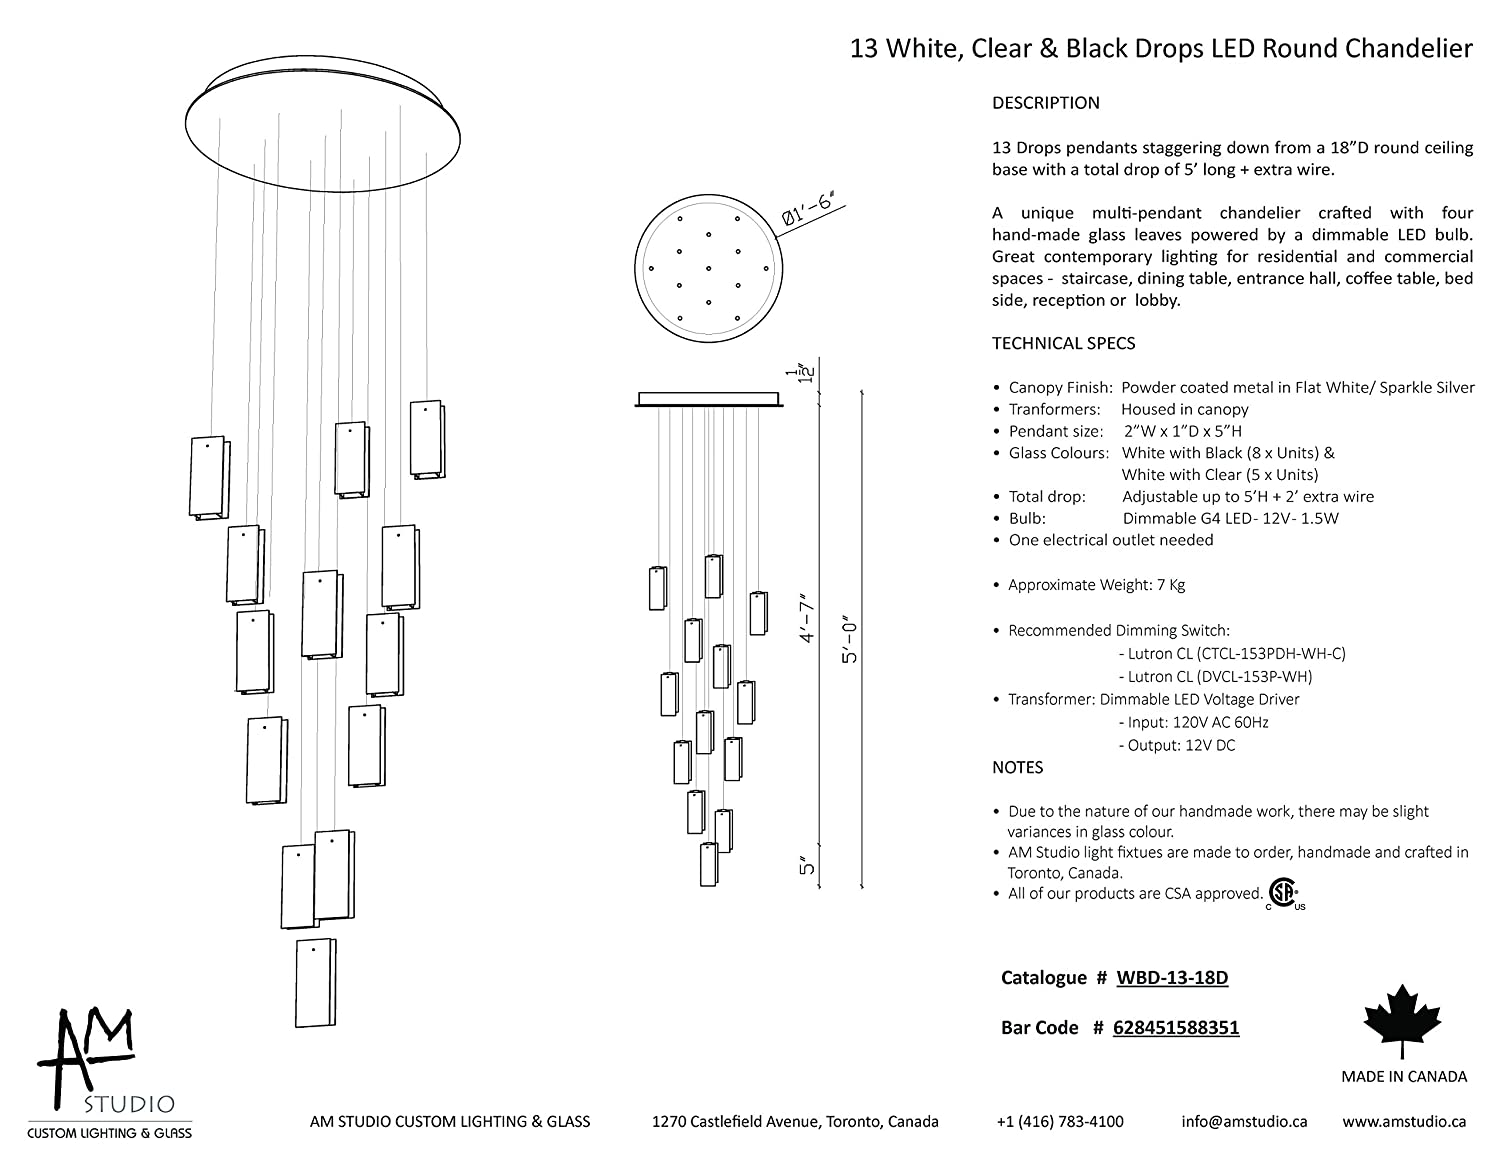 Led Chandelier Wiring Diagram Diagrams Rewiring A 13 White Clear Black Drops Round Amazon Com Light